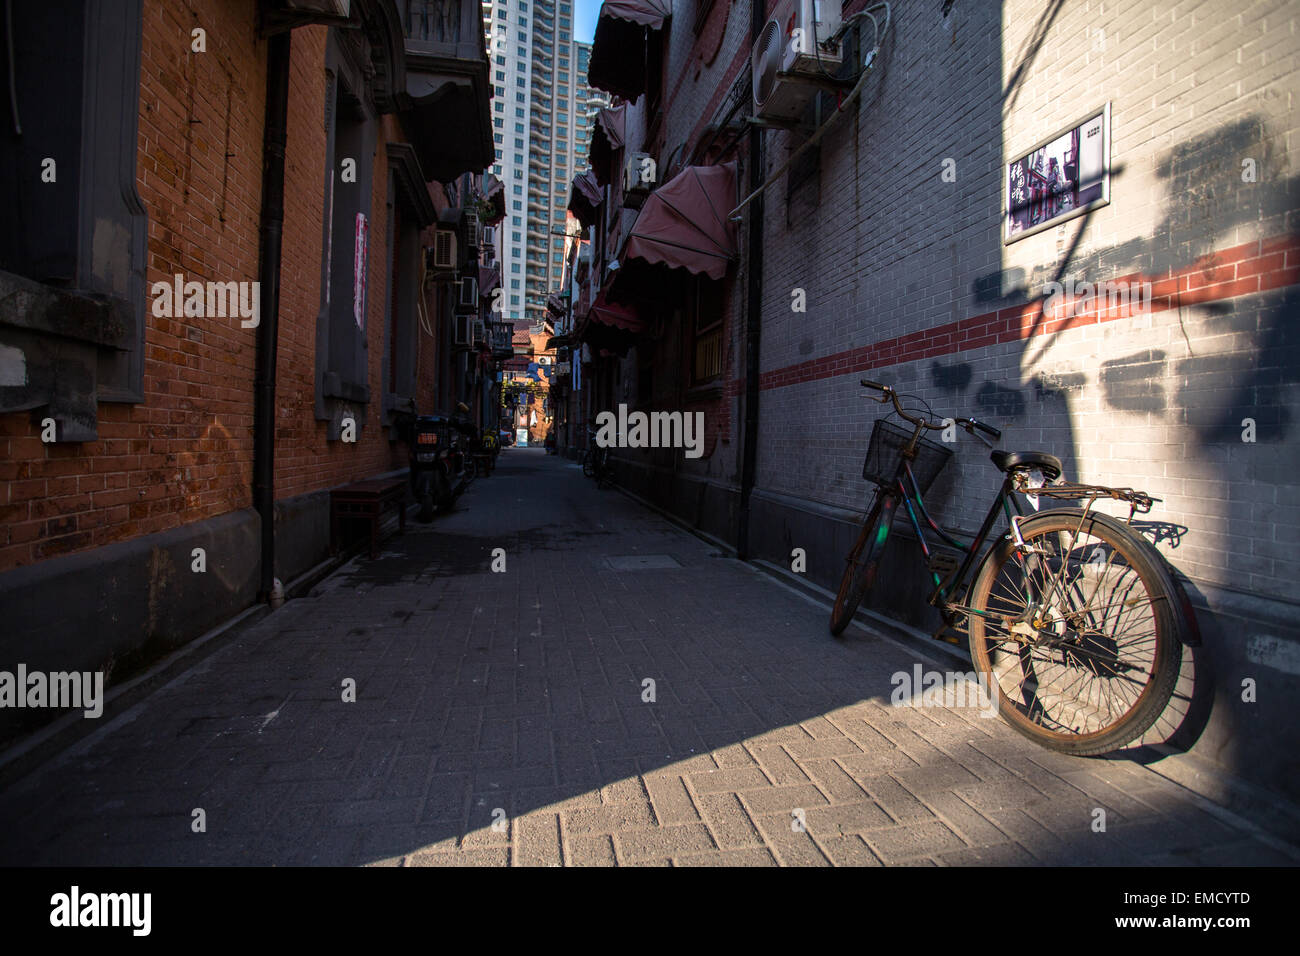 bike on the alley in Shanghai old residential district - Stock Image